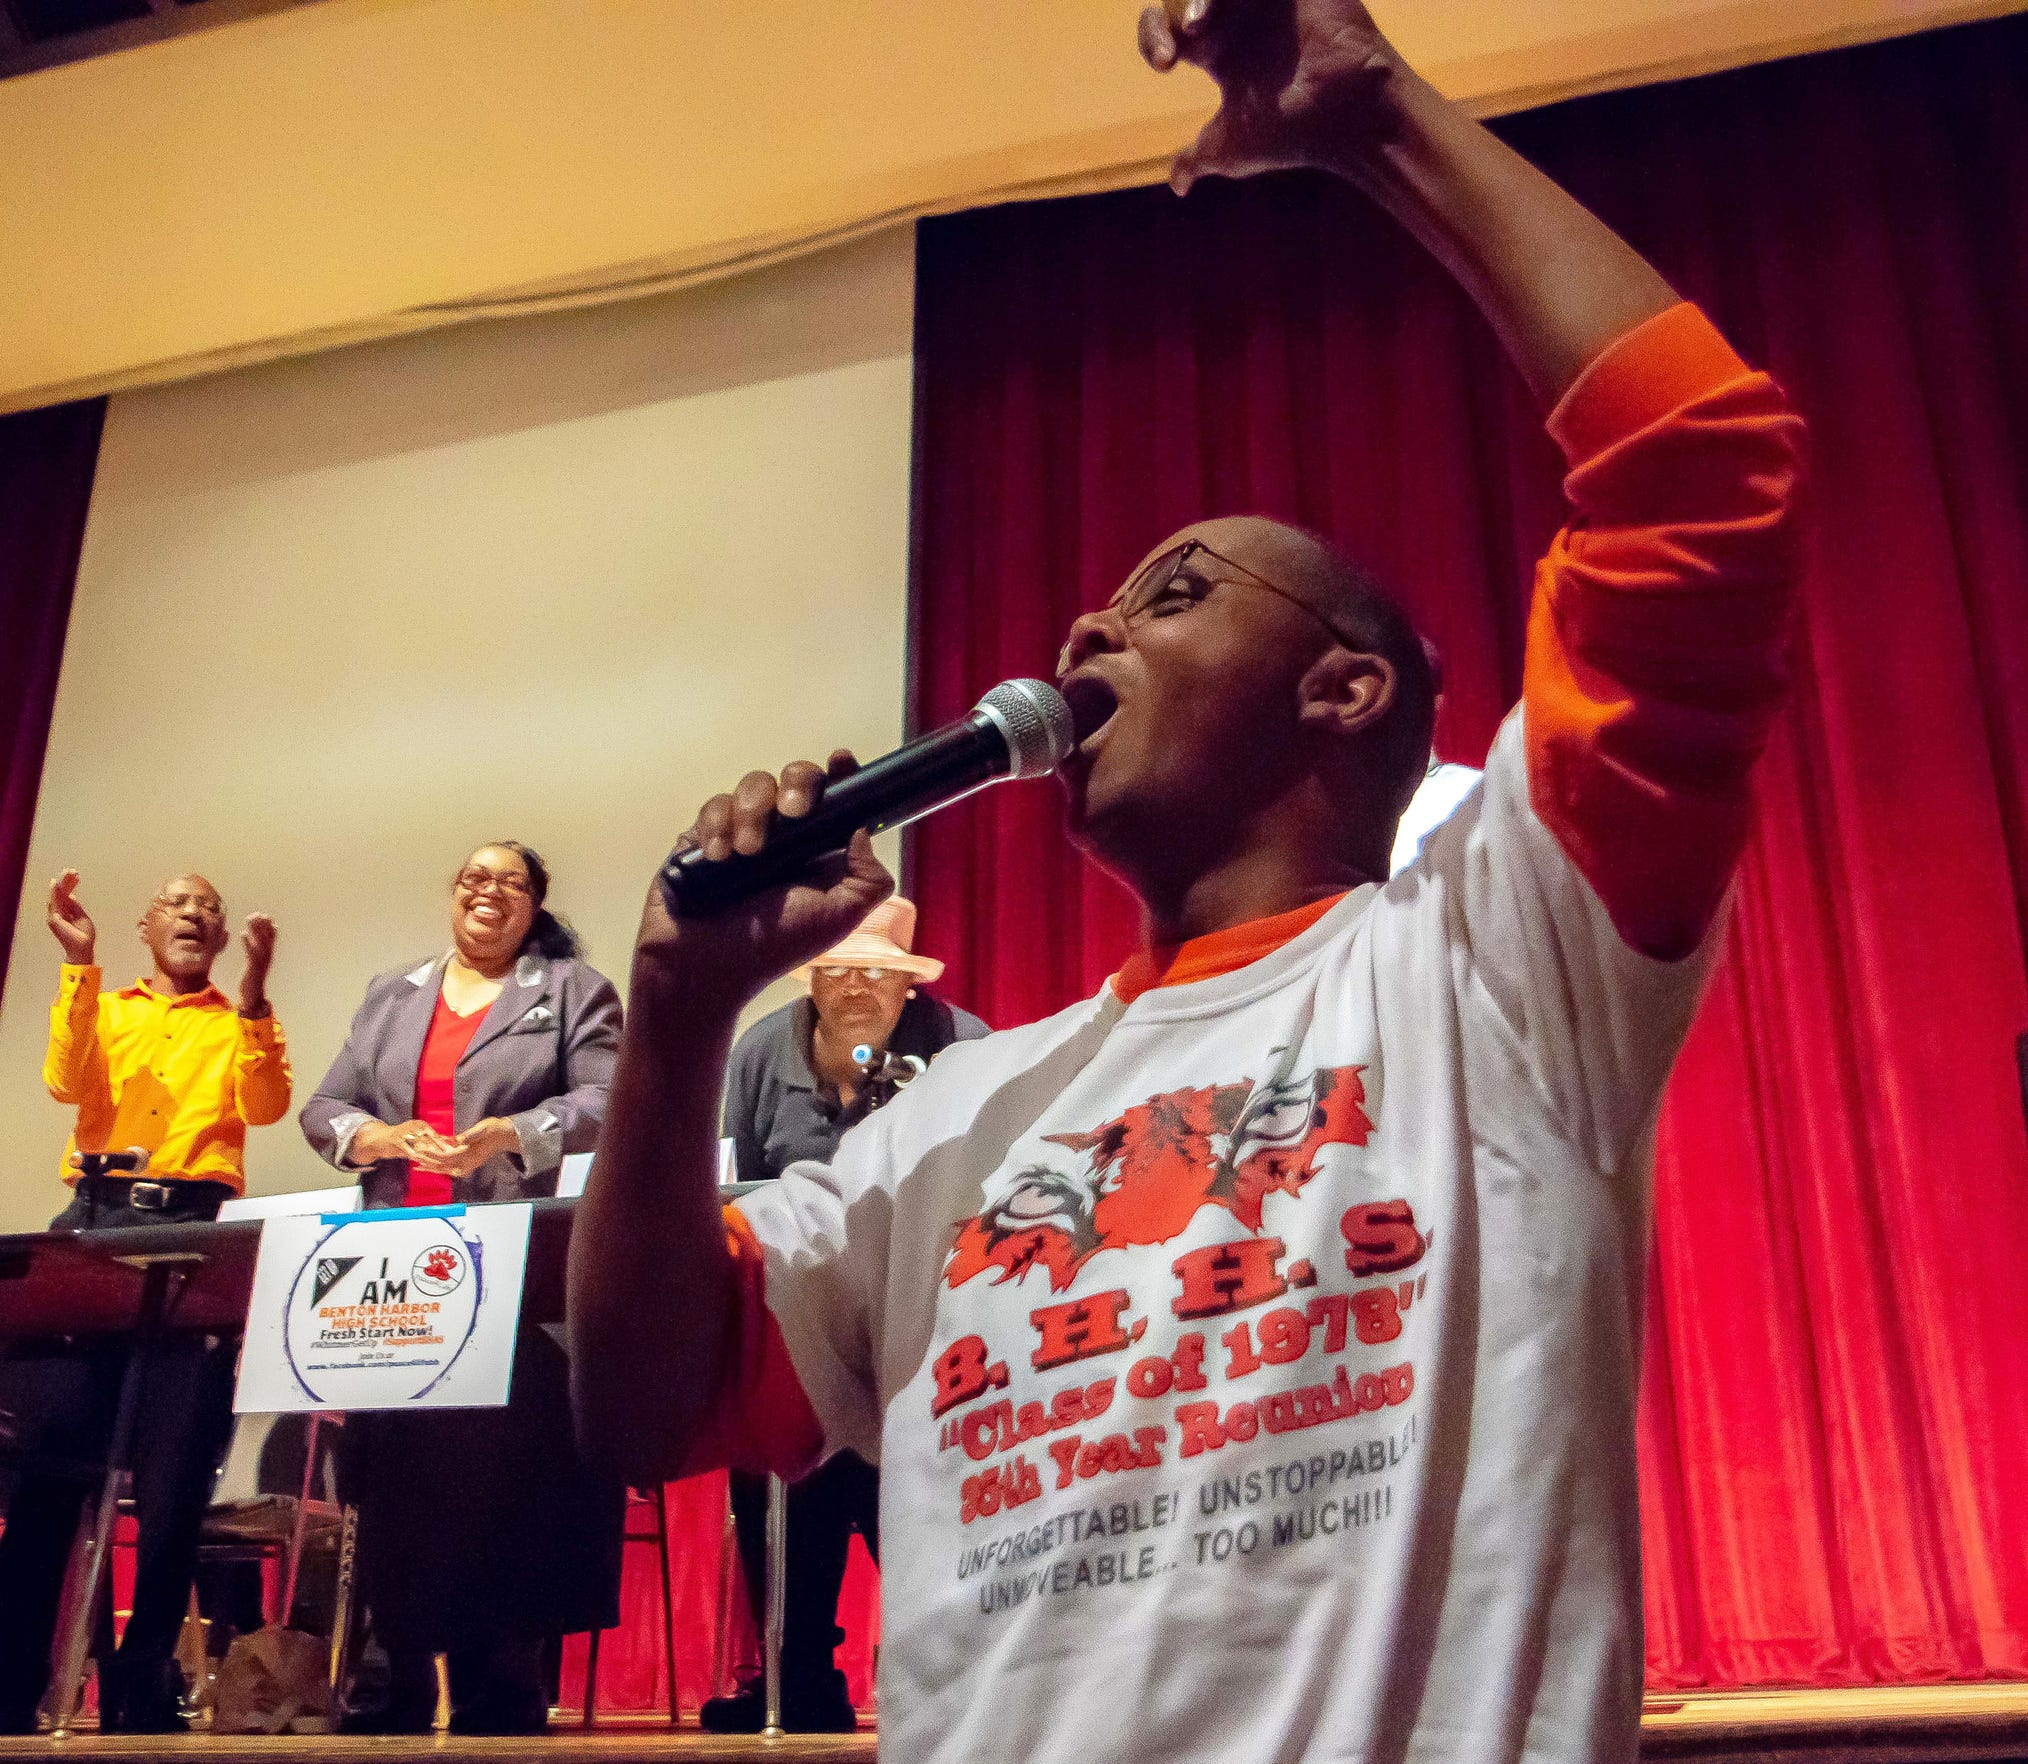 Former Benton Harbor High School principal Rodger Tripplett leads the crowd in the school's fight song at last week's school board meeting.